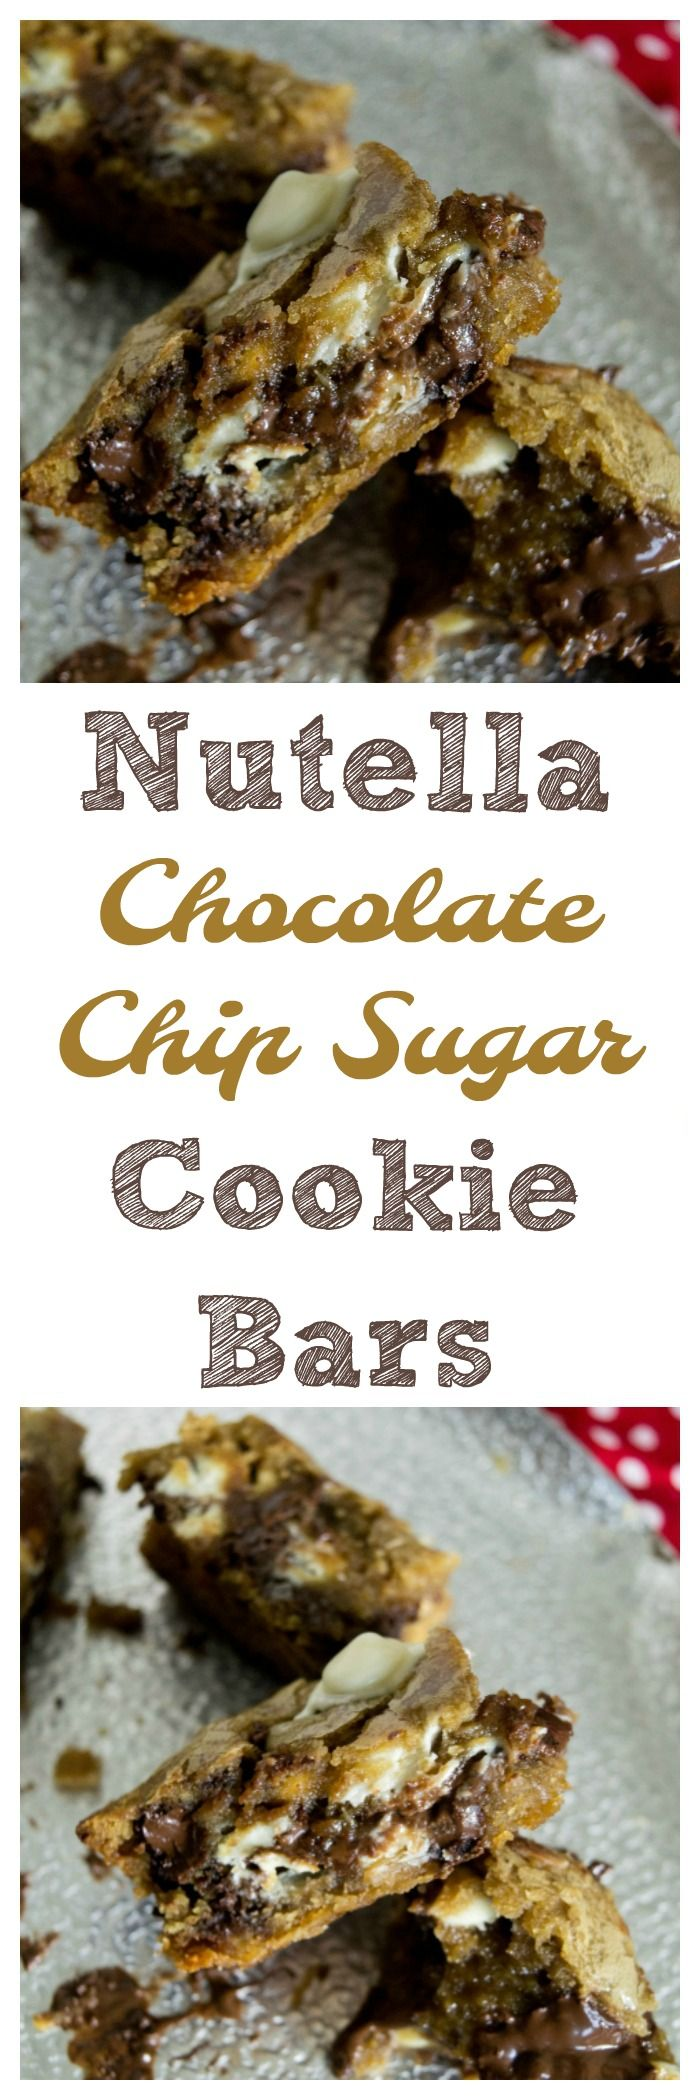 Looking for a Nutella cookie recipe? Look no farther. These Nutella Chocolate Chip Sugar Cookie Bars are so good and take cookie bars to a new level. via @debitalks